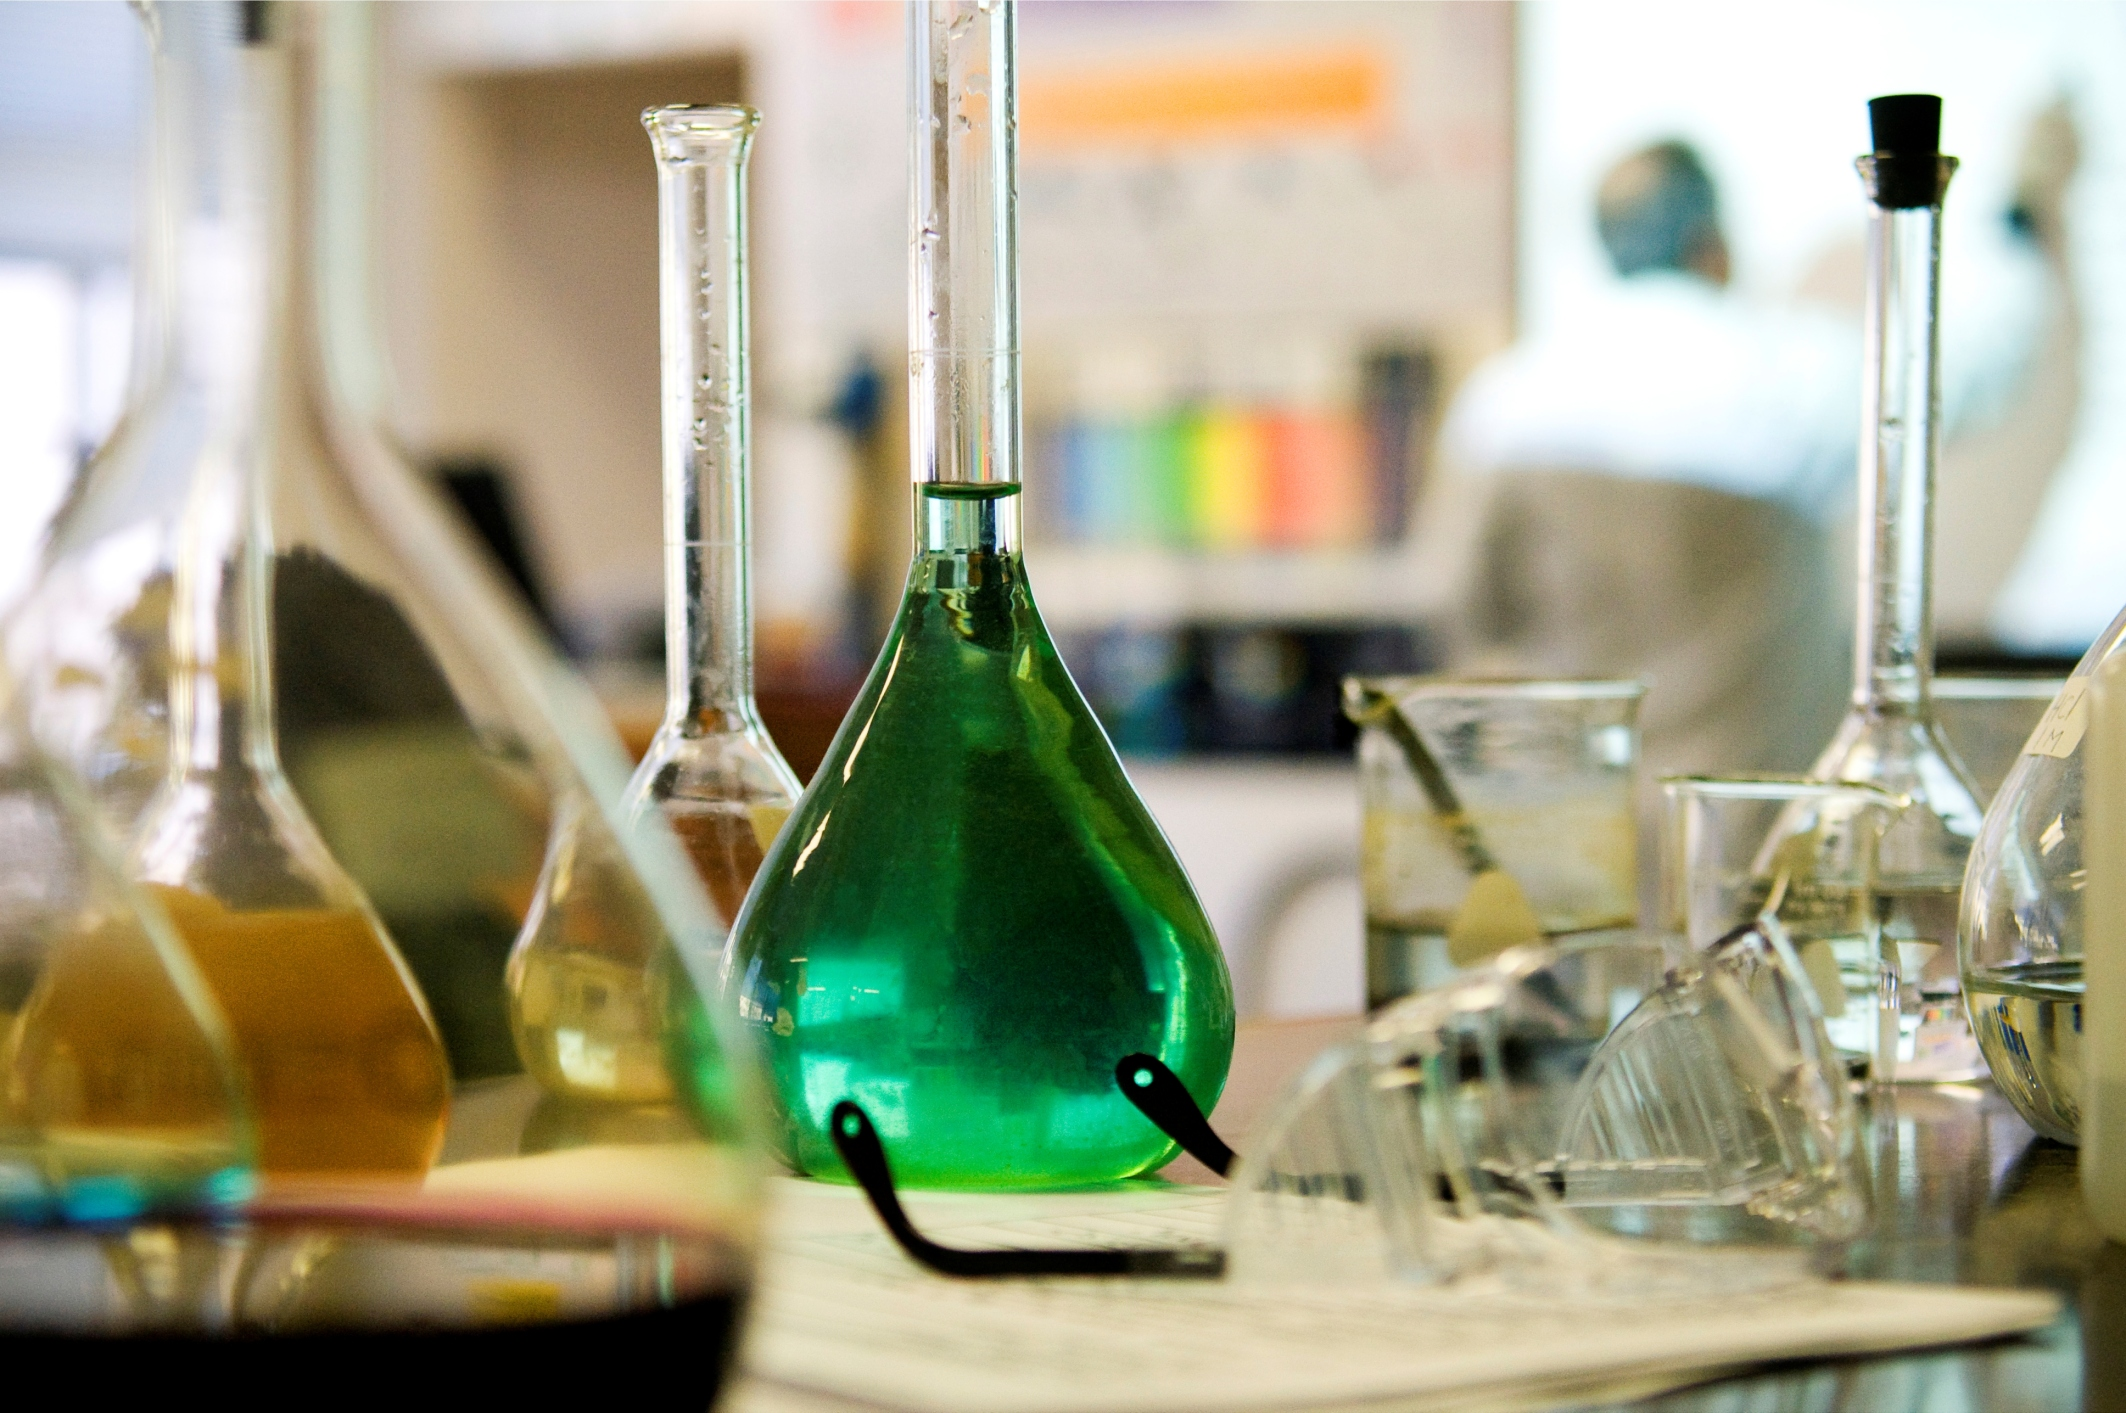 For Better or Worse – Consequences of Living with Chemicals